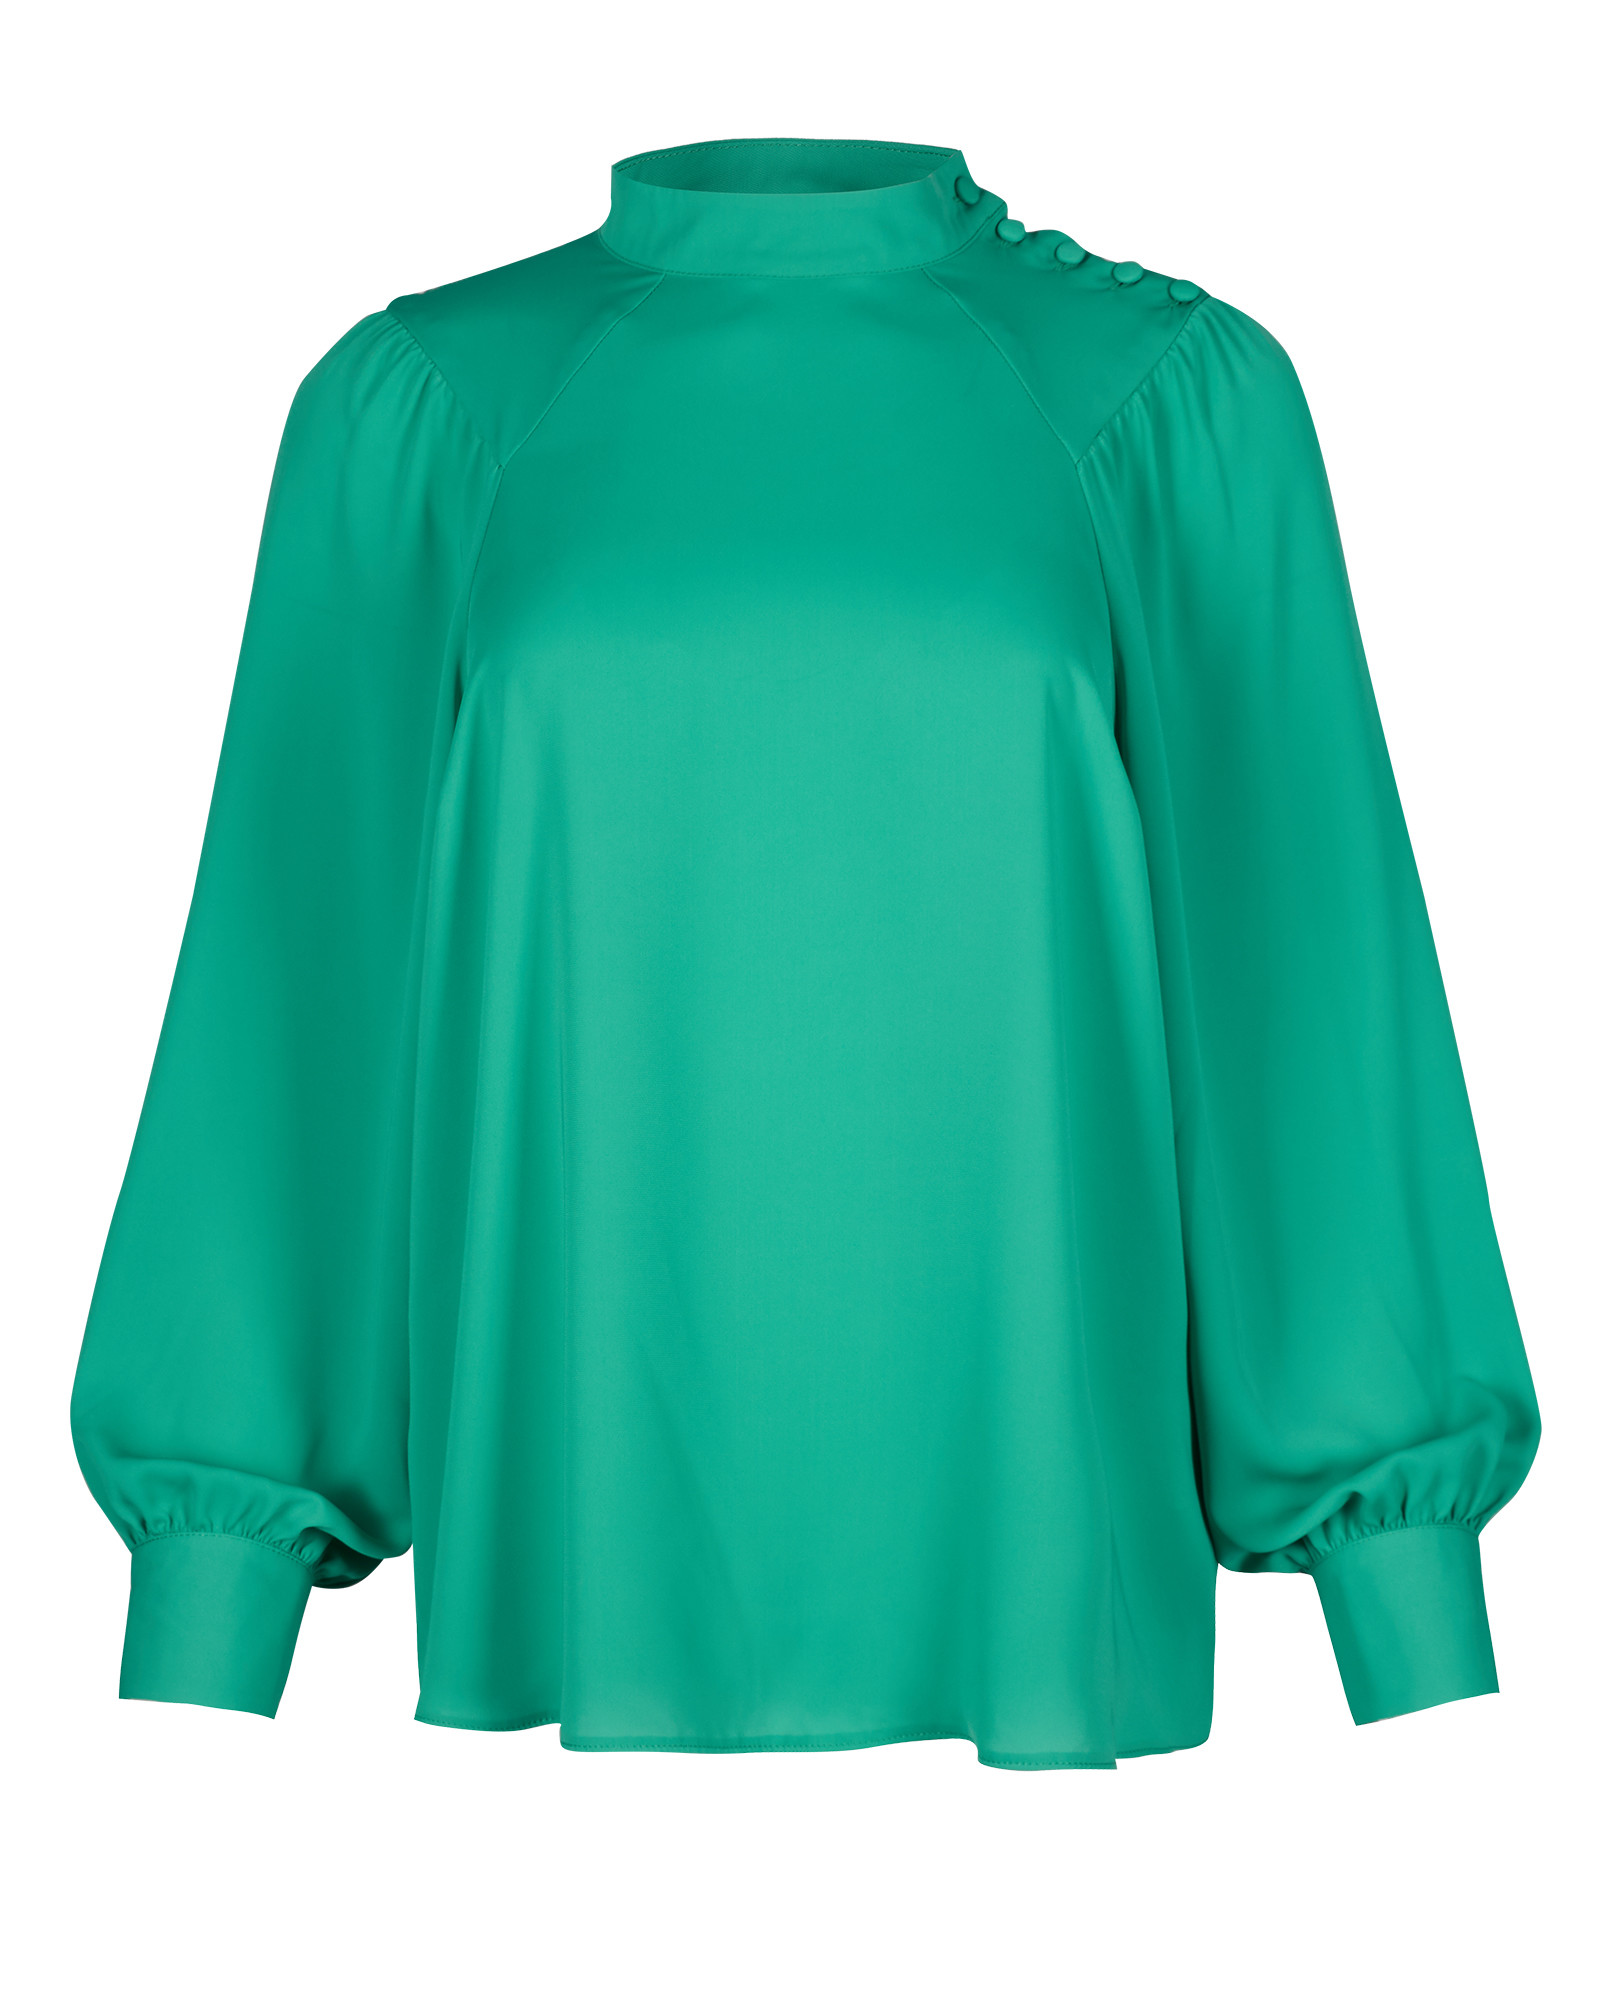 Draped Sleeve & Button Shoulder Green Blouse